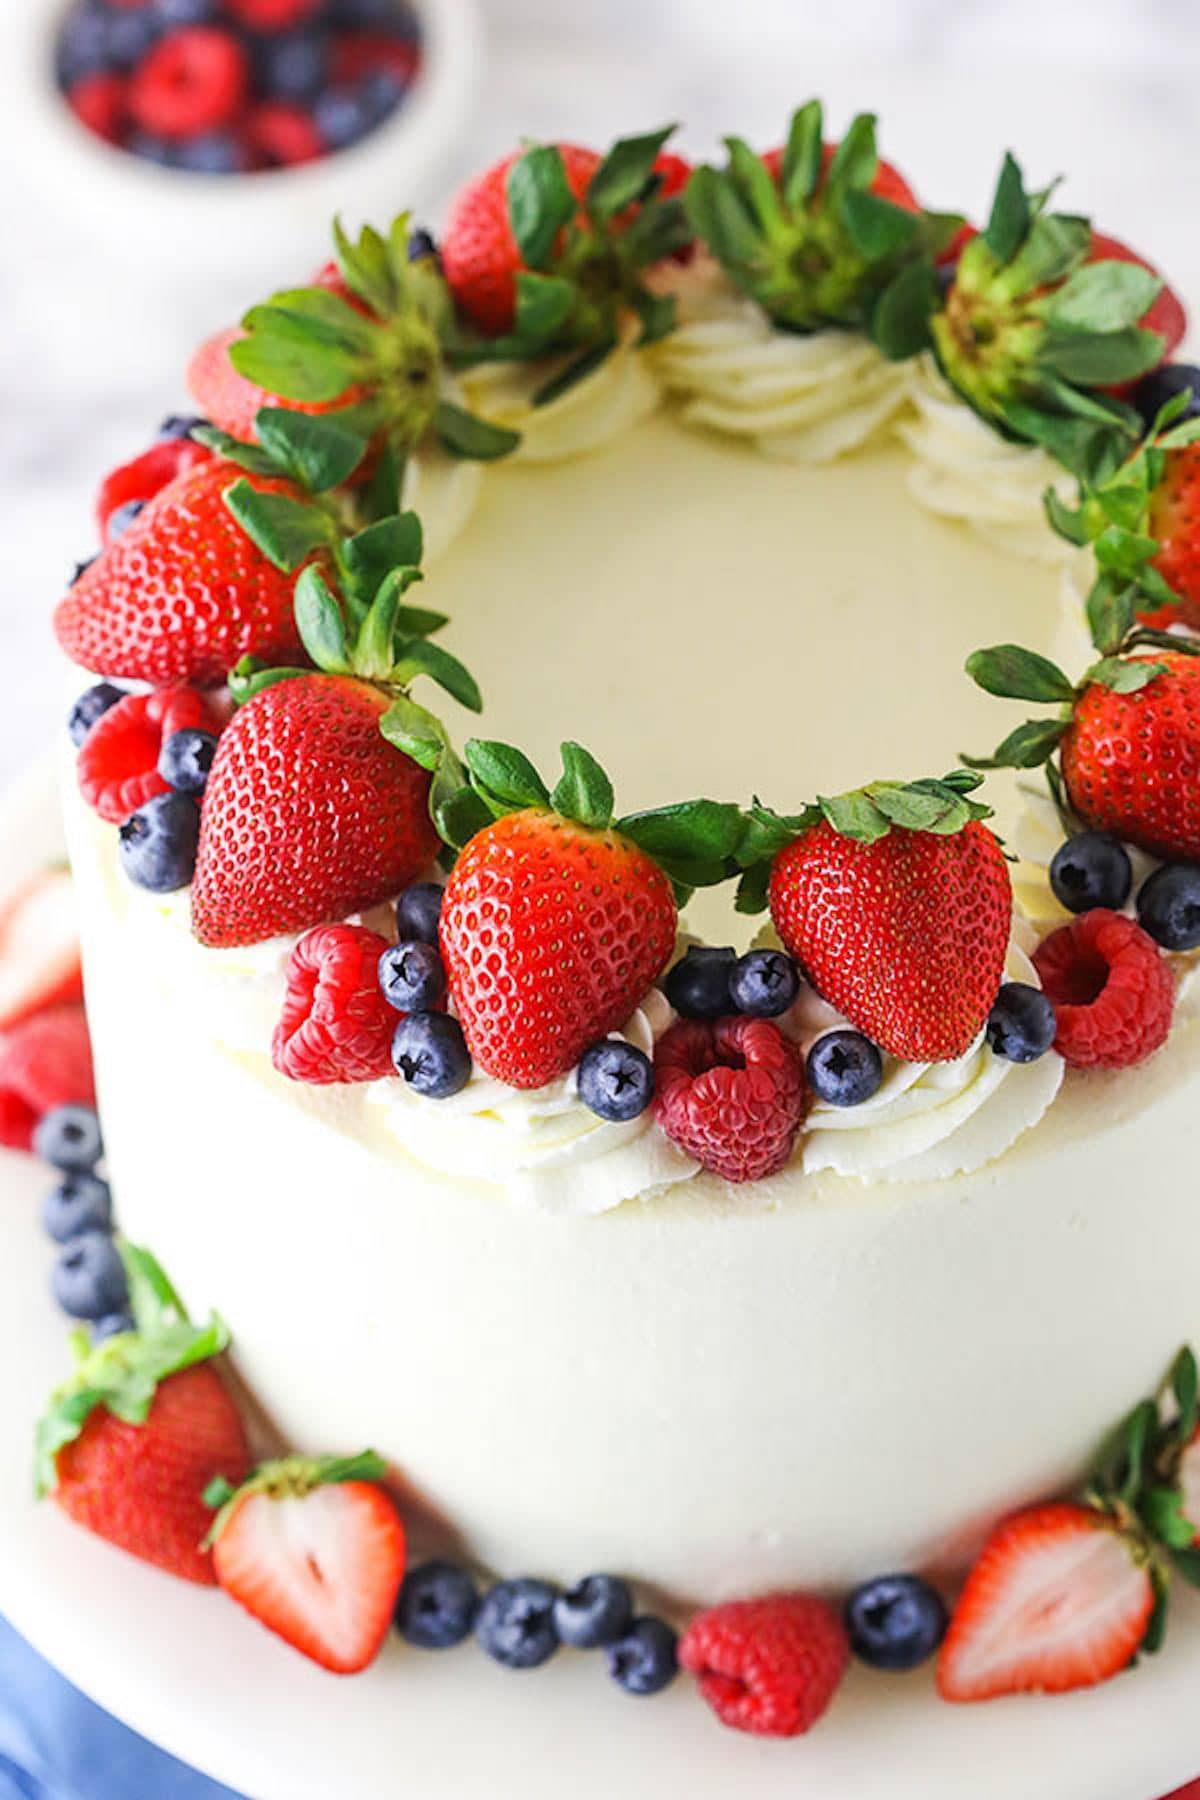 A Frosted Berry Chantilly Cake with a Ring of Strawberries, Blueberries and Raspberries on Top